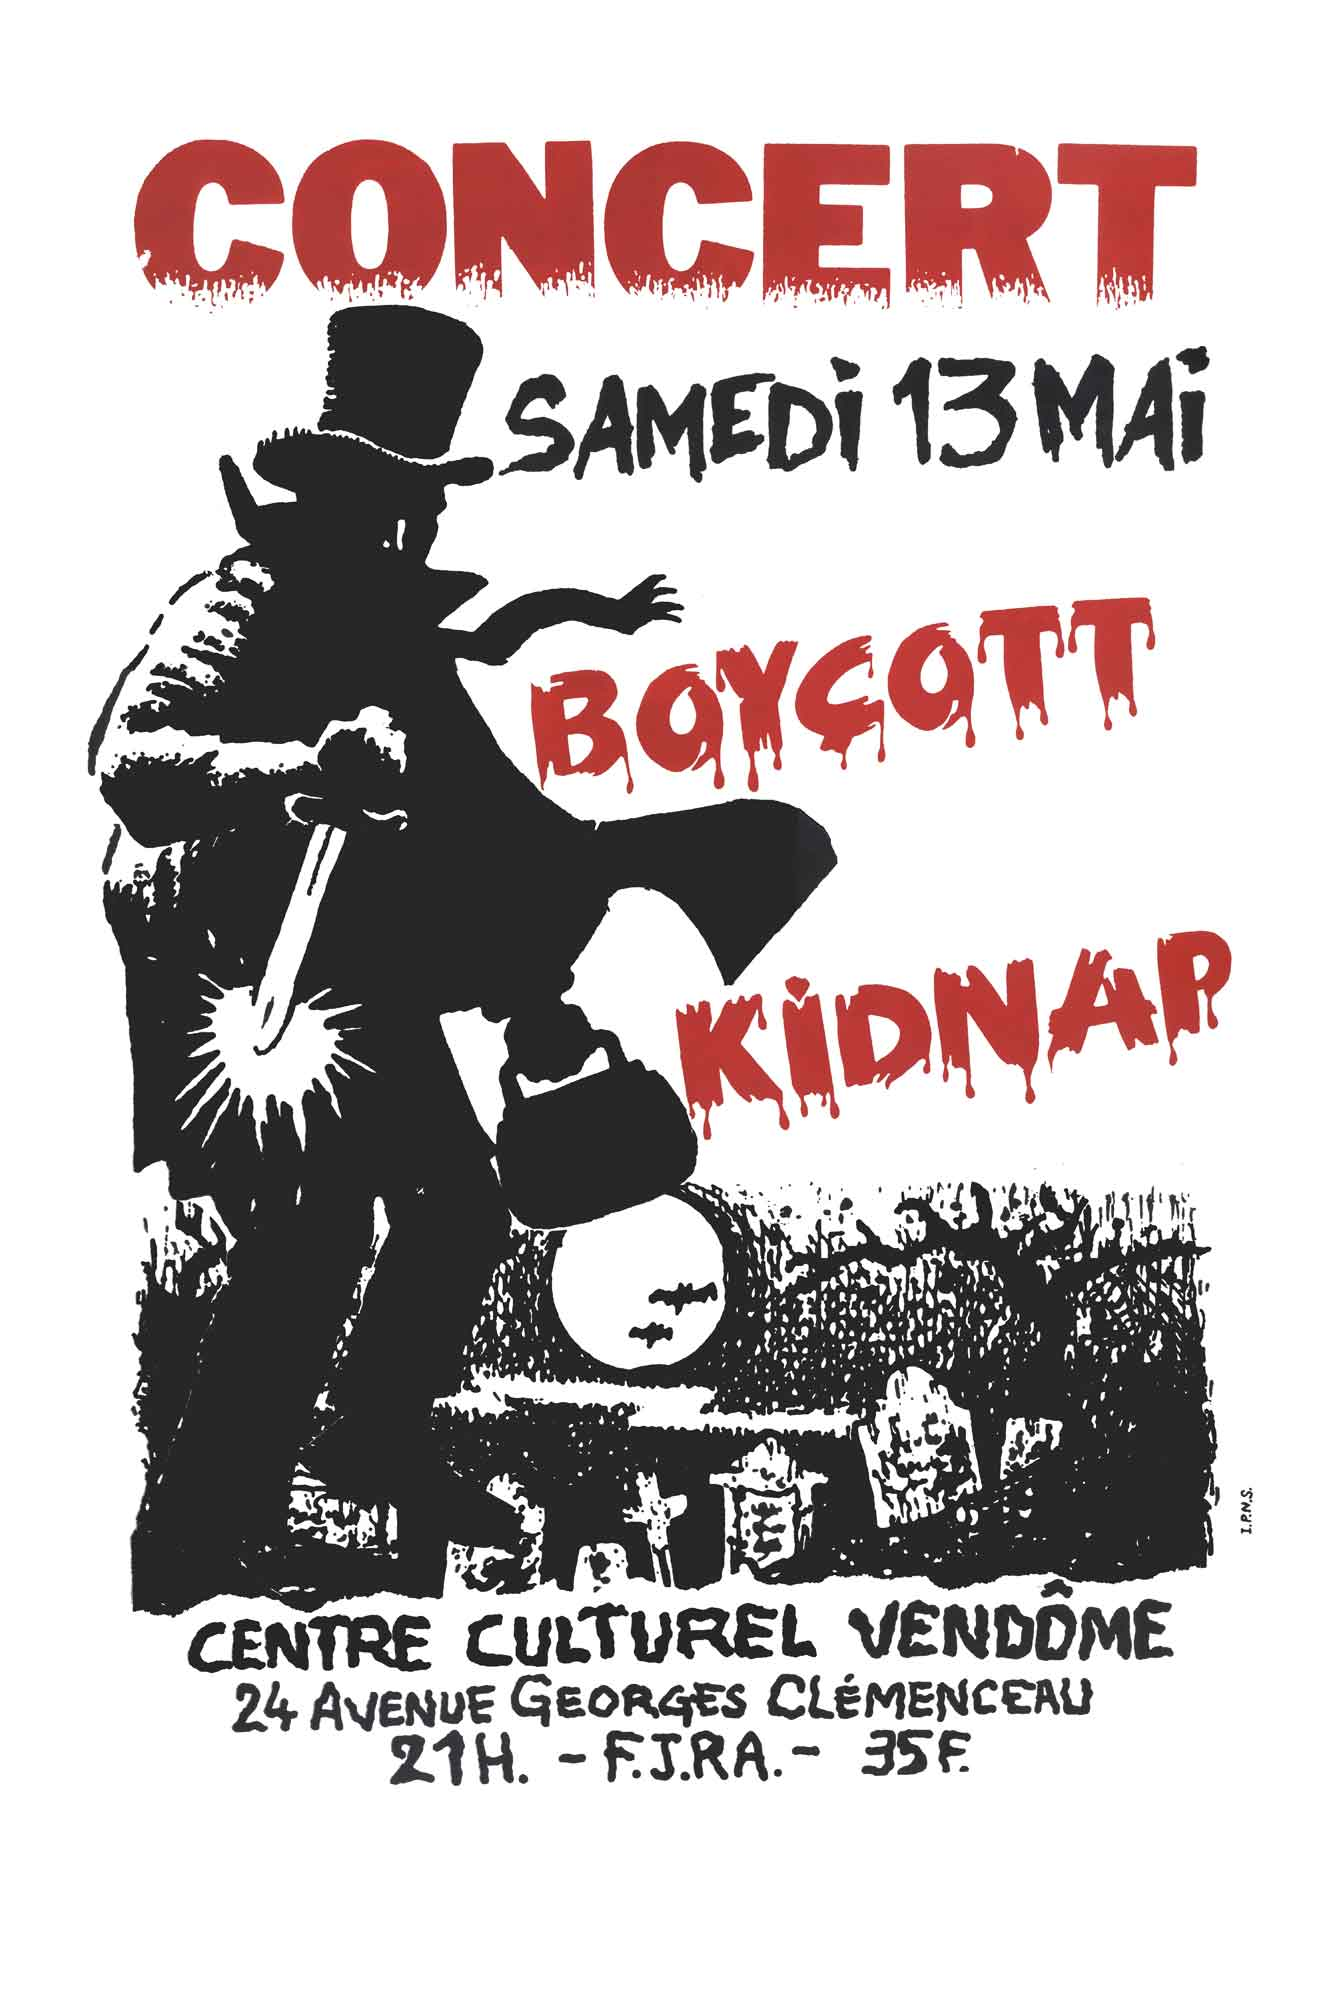 "13 mai 1989 Boycott, Kidnap à Vendome ""Centre Culturel"""